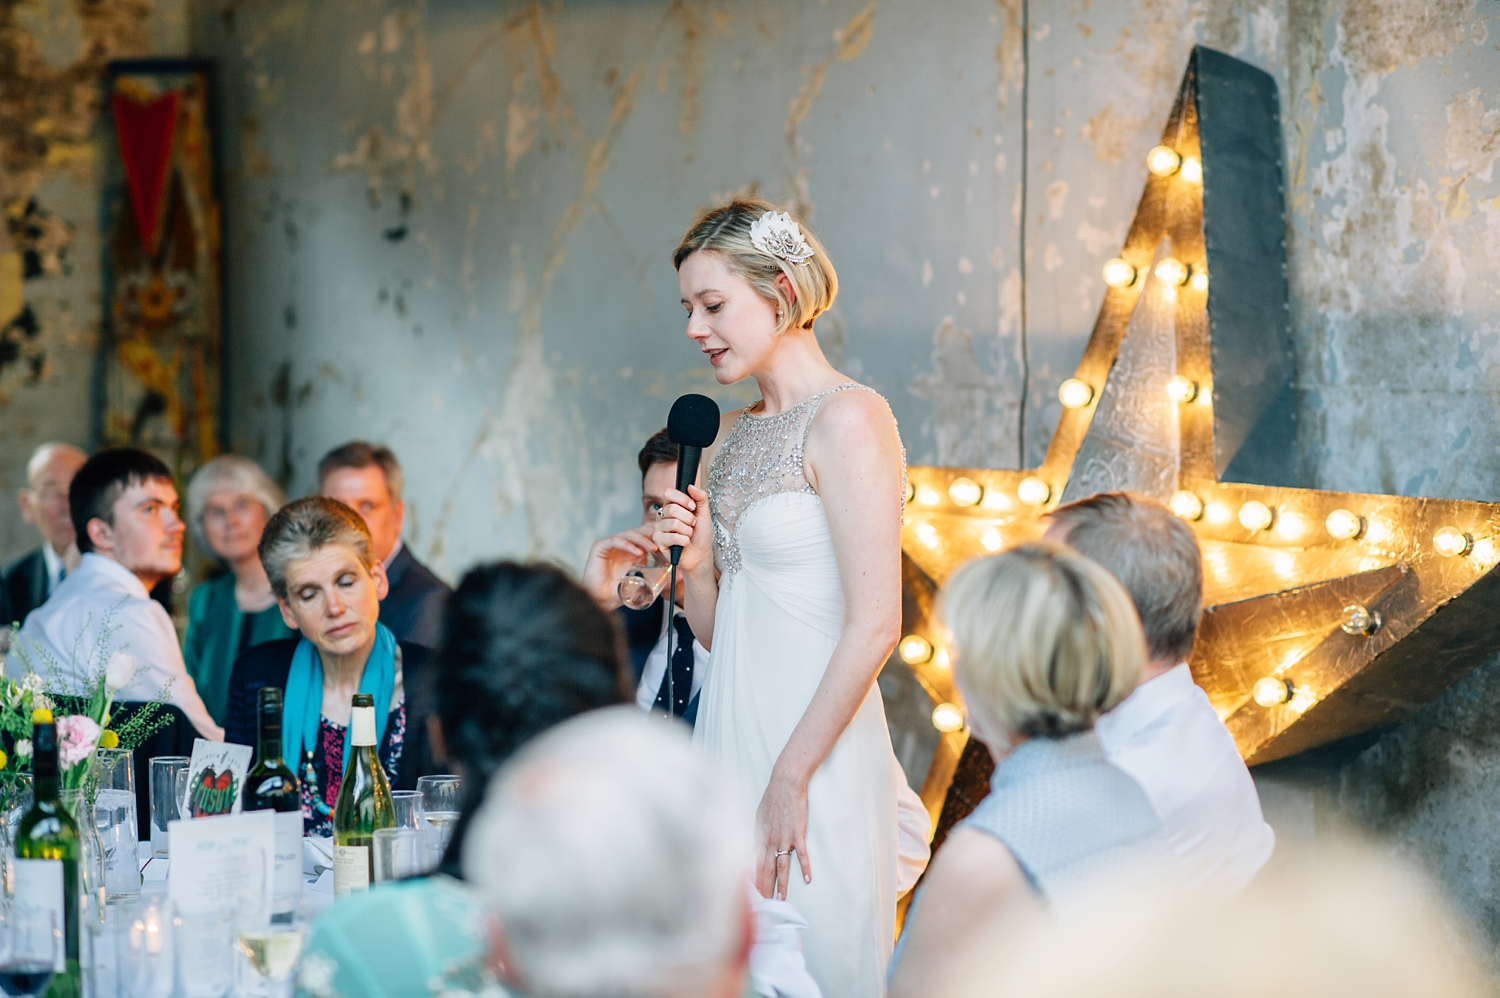 0161-lisa-devine-alternative-wedding-photography-london-hackney-dalston-london-photography-townhall-hotel.JPG